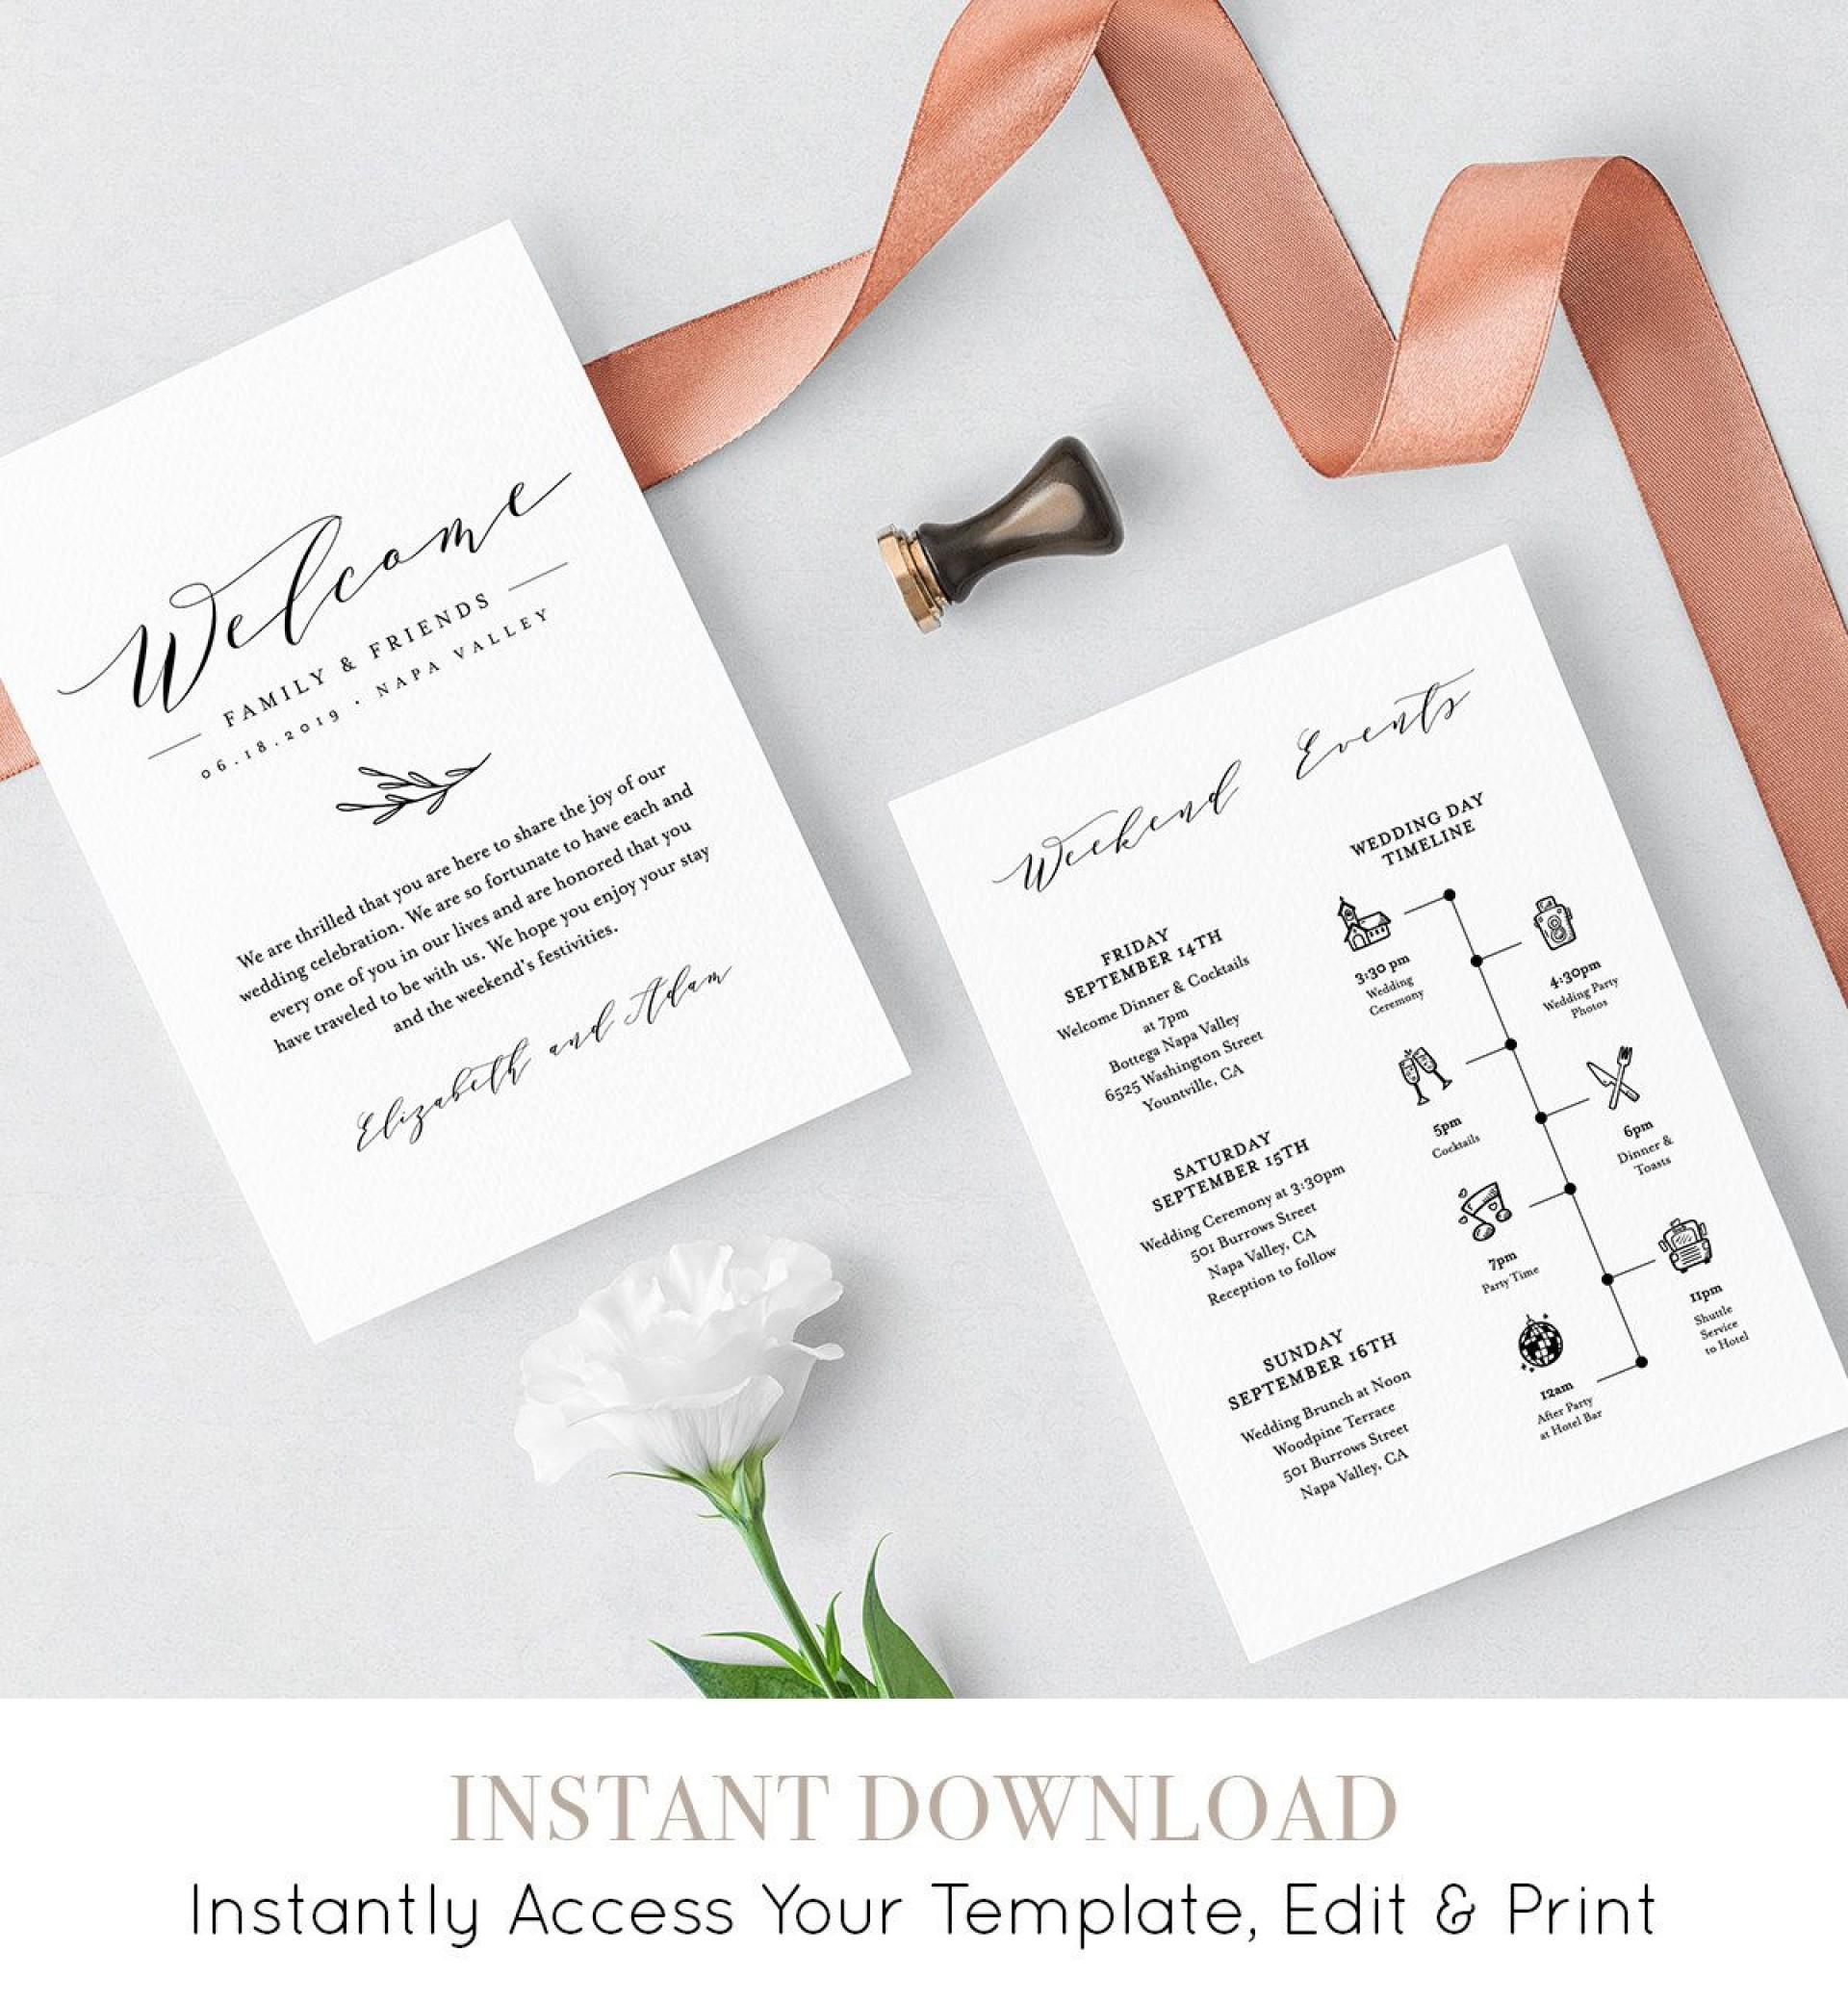 007 Staggering Wedding Welcome Bag Letter Template Example  Free1920